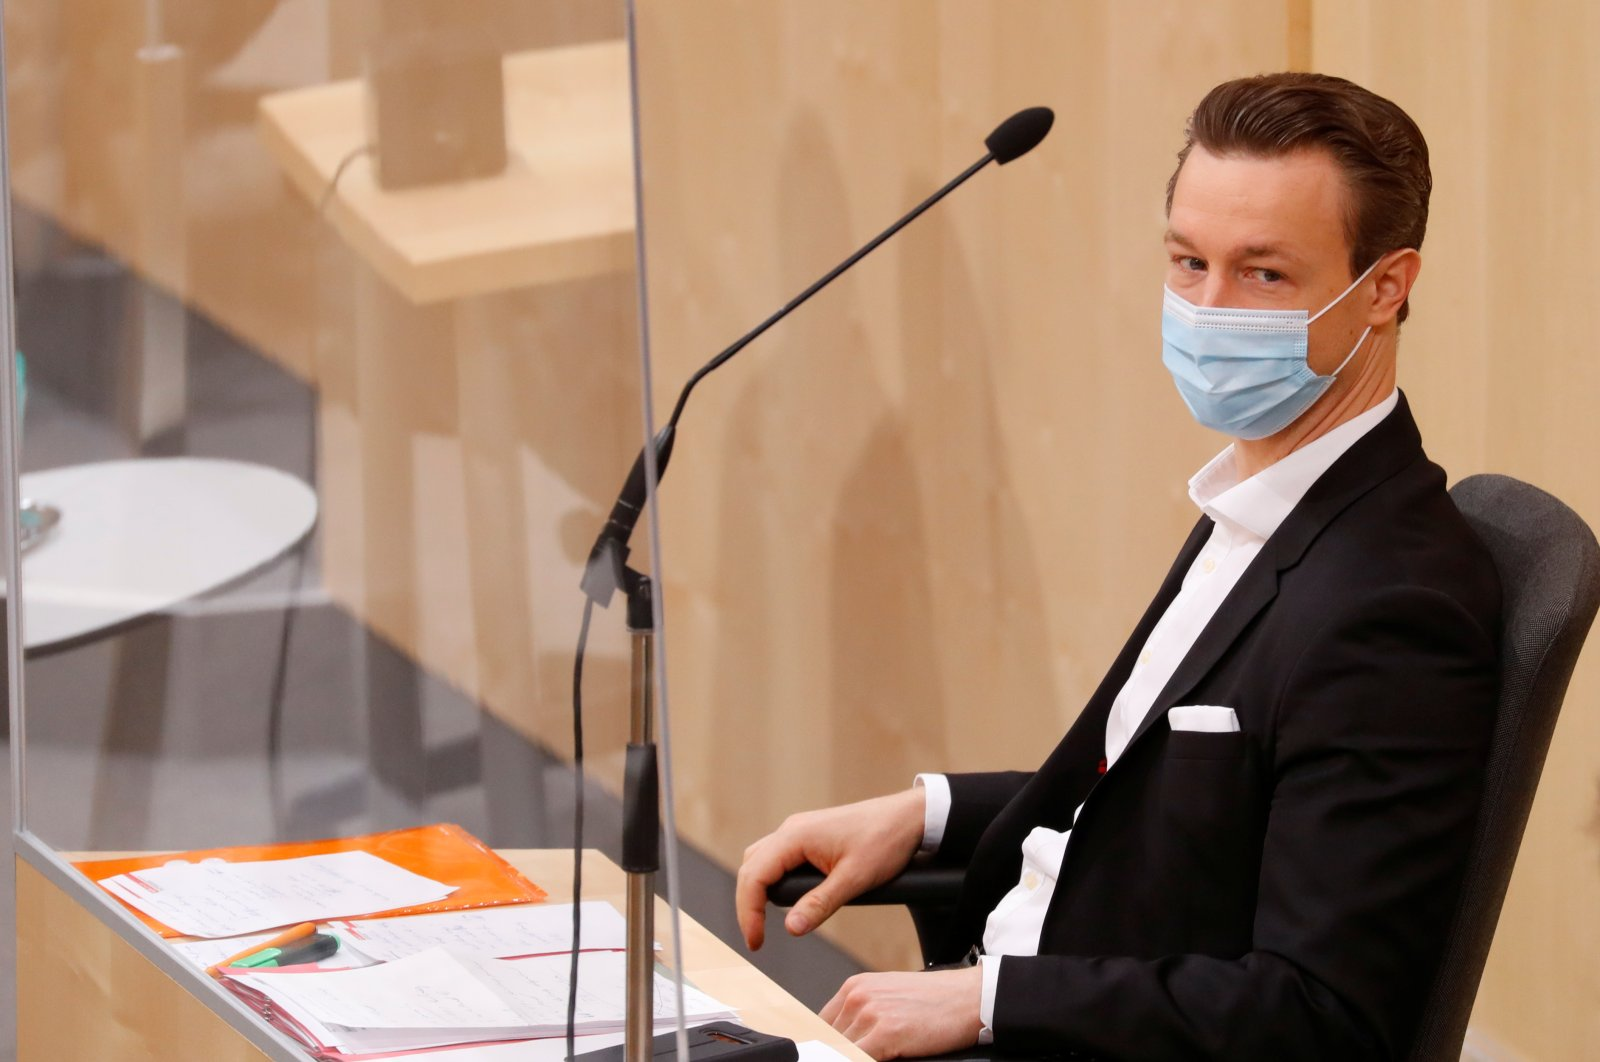 Austrian Finance Minister Gernot Bluemel wearing a protective face mask waits for the start of a session of the parliament, Vienna, May 26, 2020. (Reuters Photo)